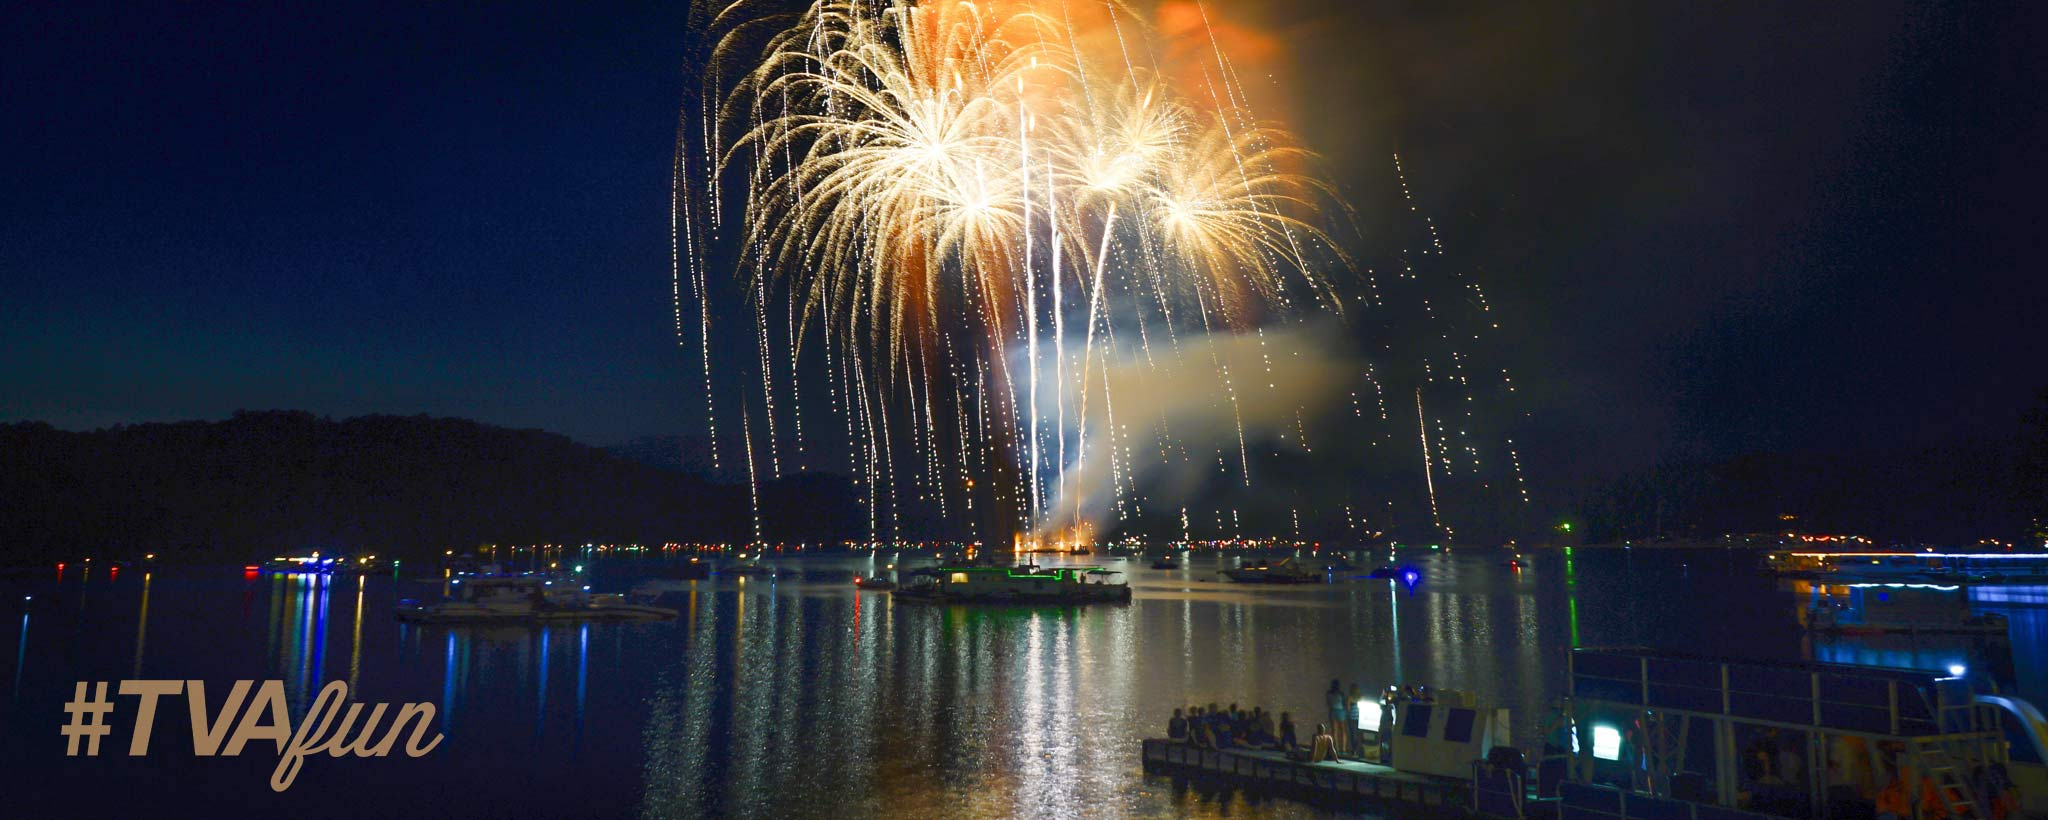 Fireworks on the Water